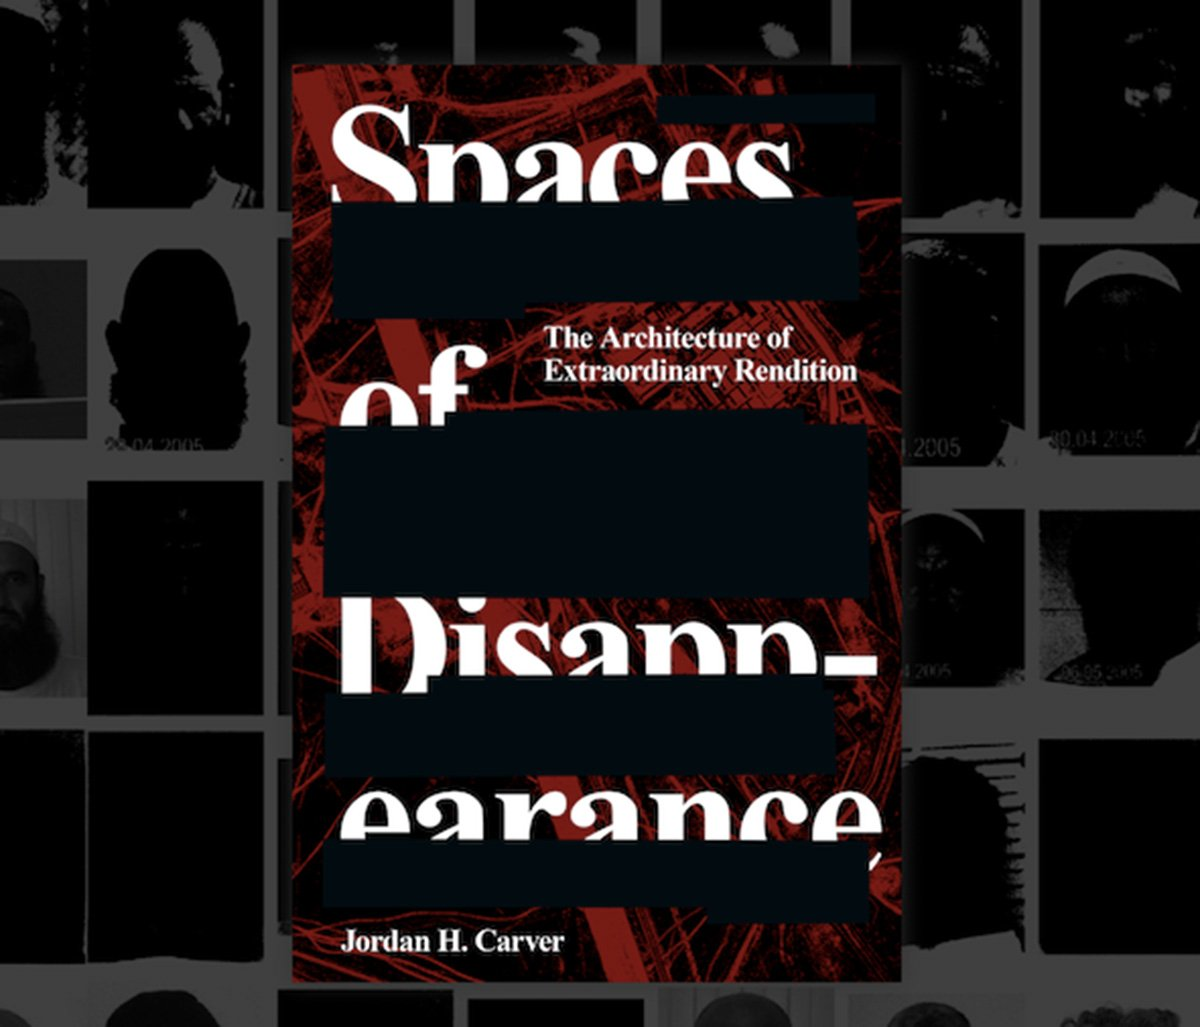 """This affecting and harrowing book examines the spatial manifestations of the War on Terror. From the uncertain sovereign spaces of Guantanamo Bay to the prefabricated metal cells that are used to house detainees in black sites, to the globally disbursed architecture of torture and disappearance, this book's focus on extraordinary rendition illuminates the uneven spatio-temporal distributions of power and violence."" — Laleh Khalili, Author of  Time in the Shadows: Confinement in Counterinsurgencies"